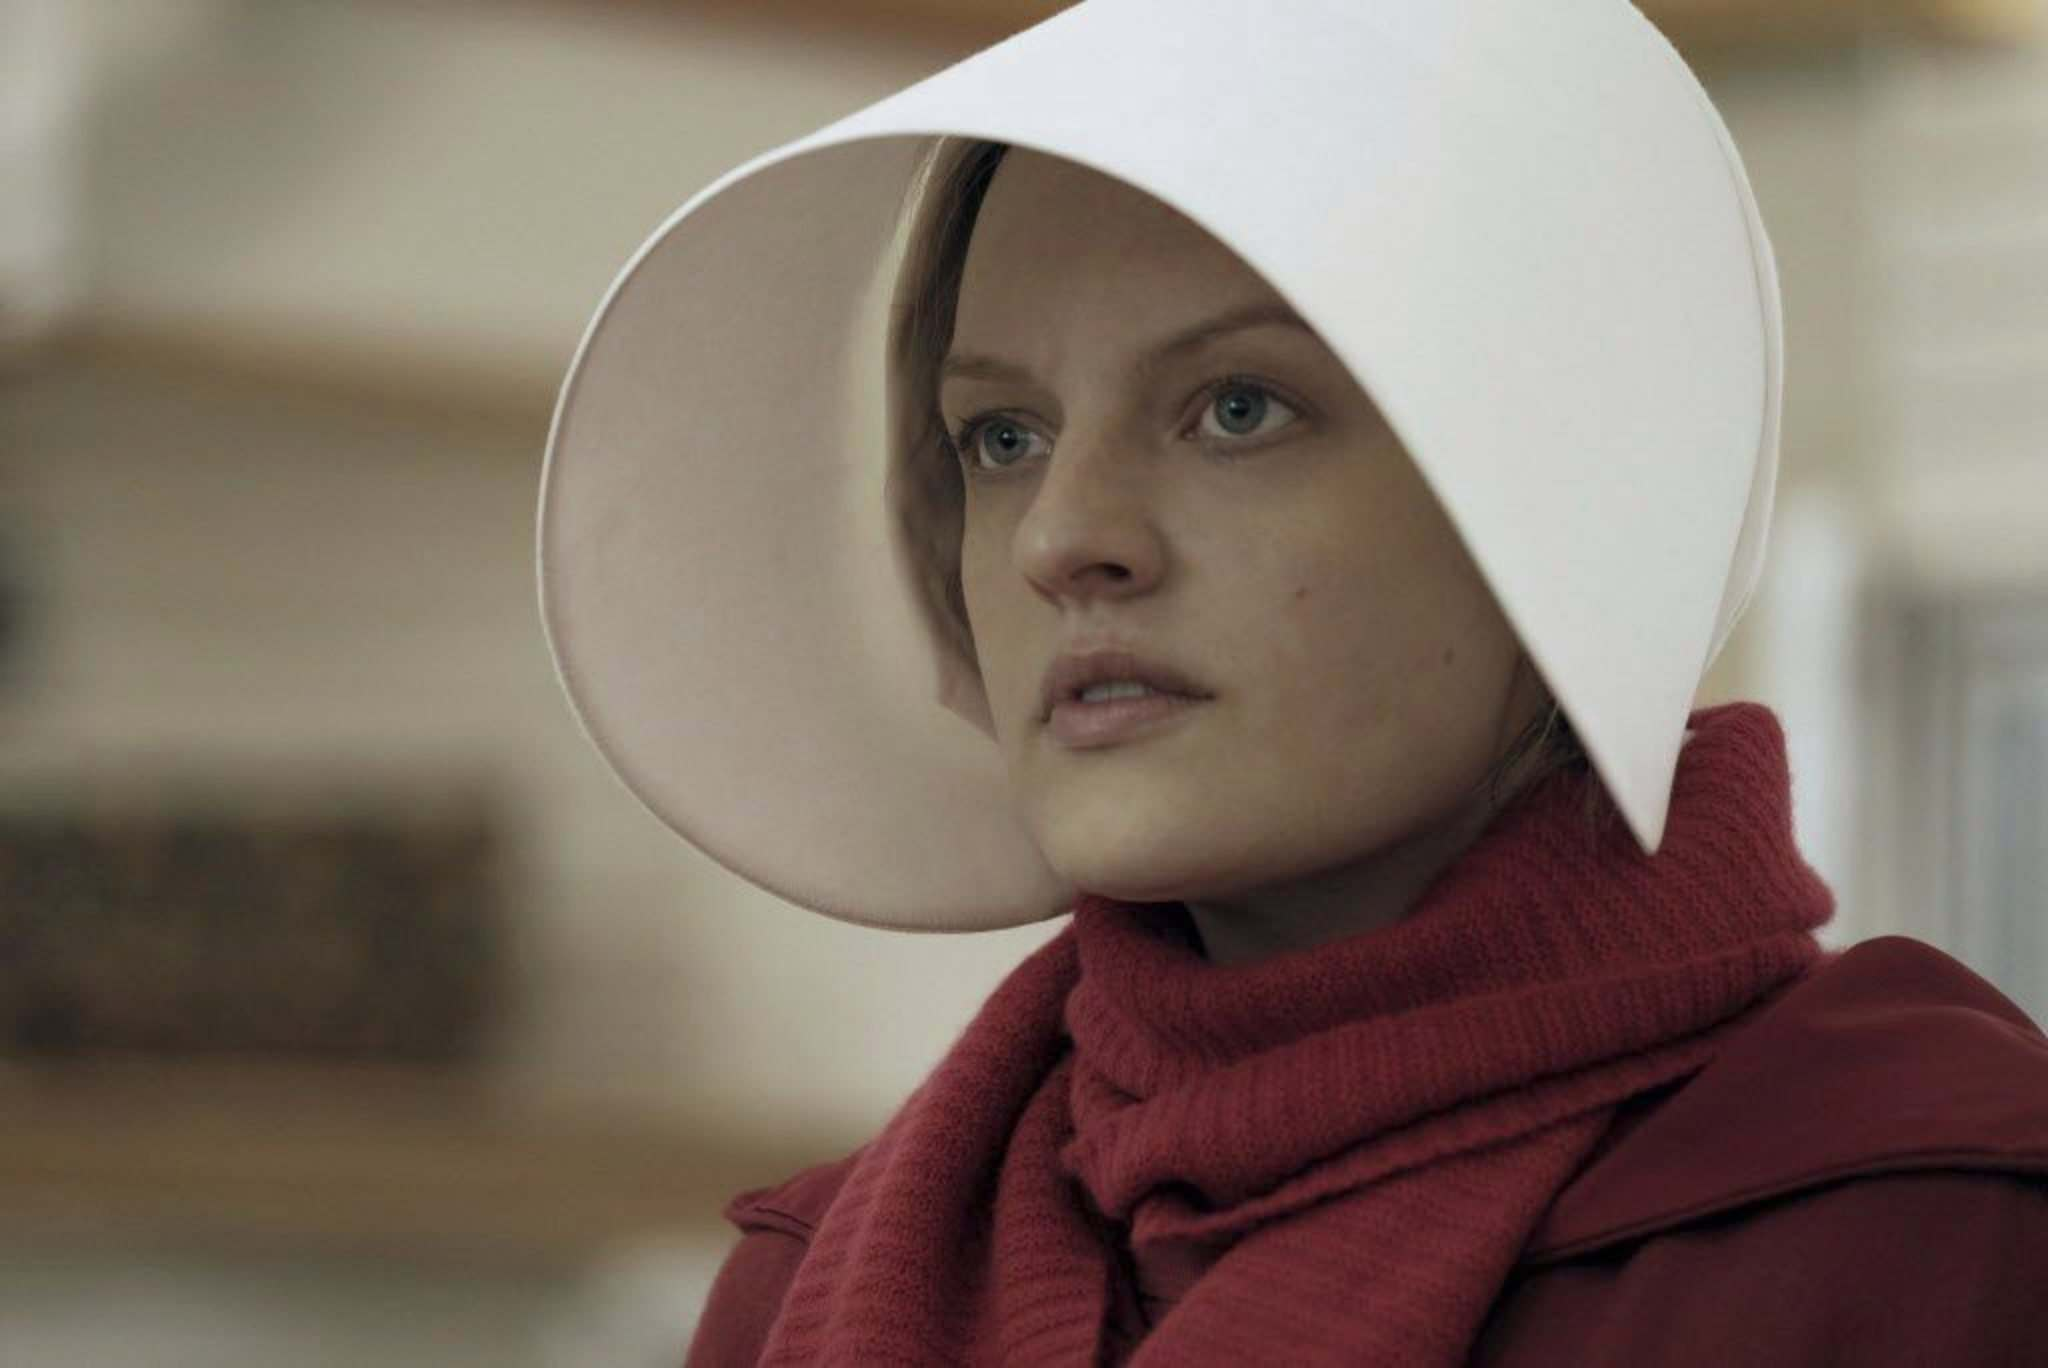 George Kraychyk / Hulu</p><p>Elisabeth Moss won an Emmy for her portrayal of Offred in The Handmaid's Tale.</p></p>